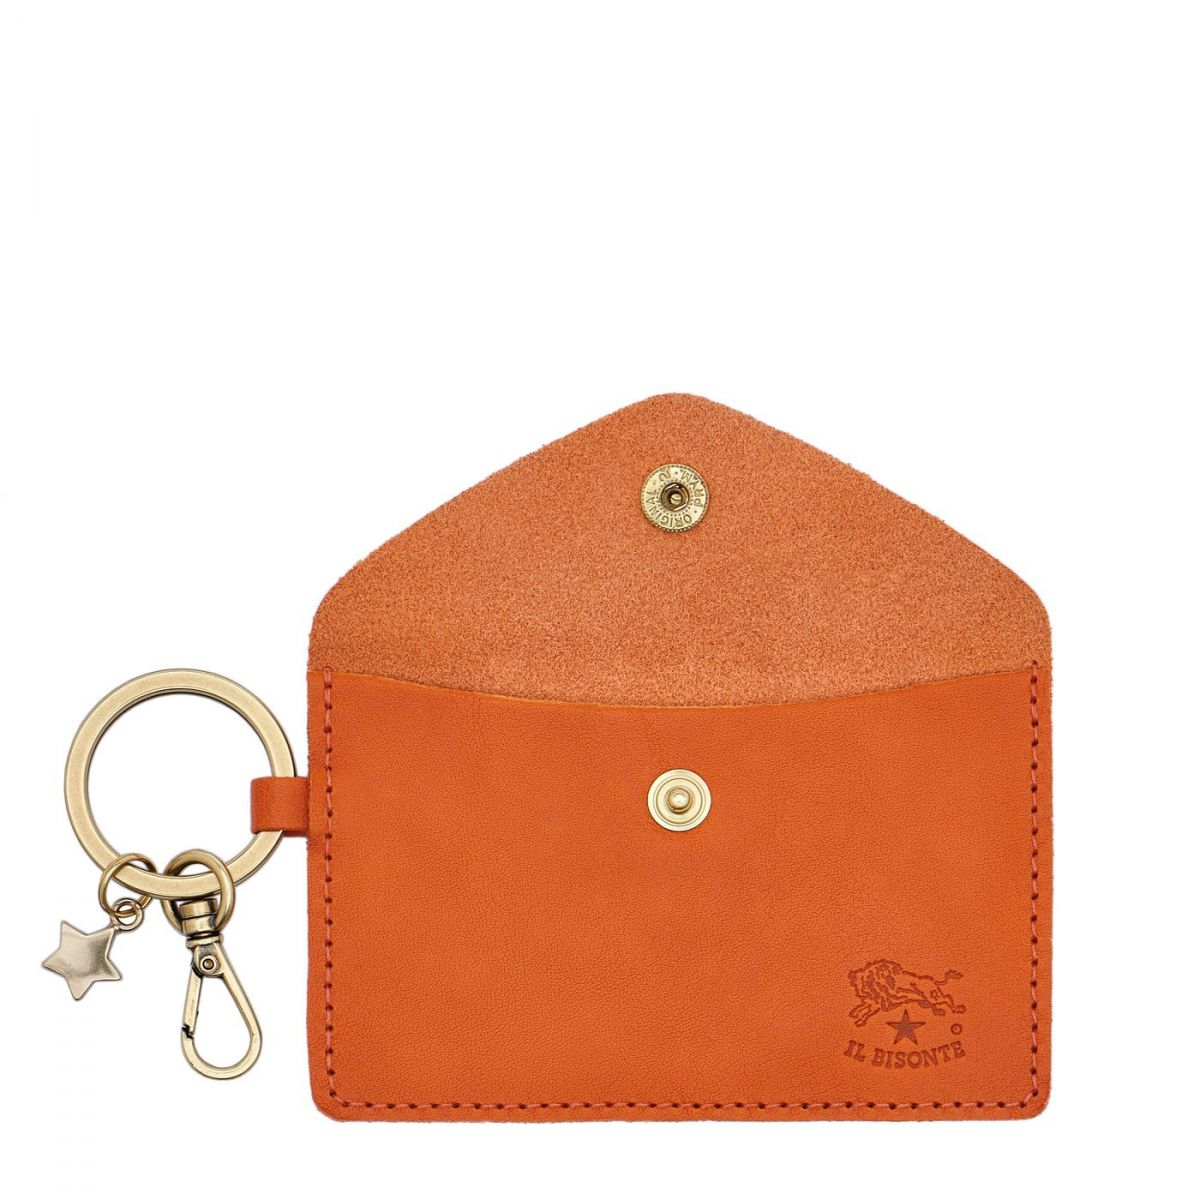 Scarlino - Women's Keyring in Cowhide Double Leather color Orange - SKH042 | Details